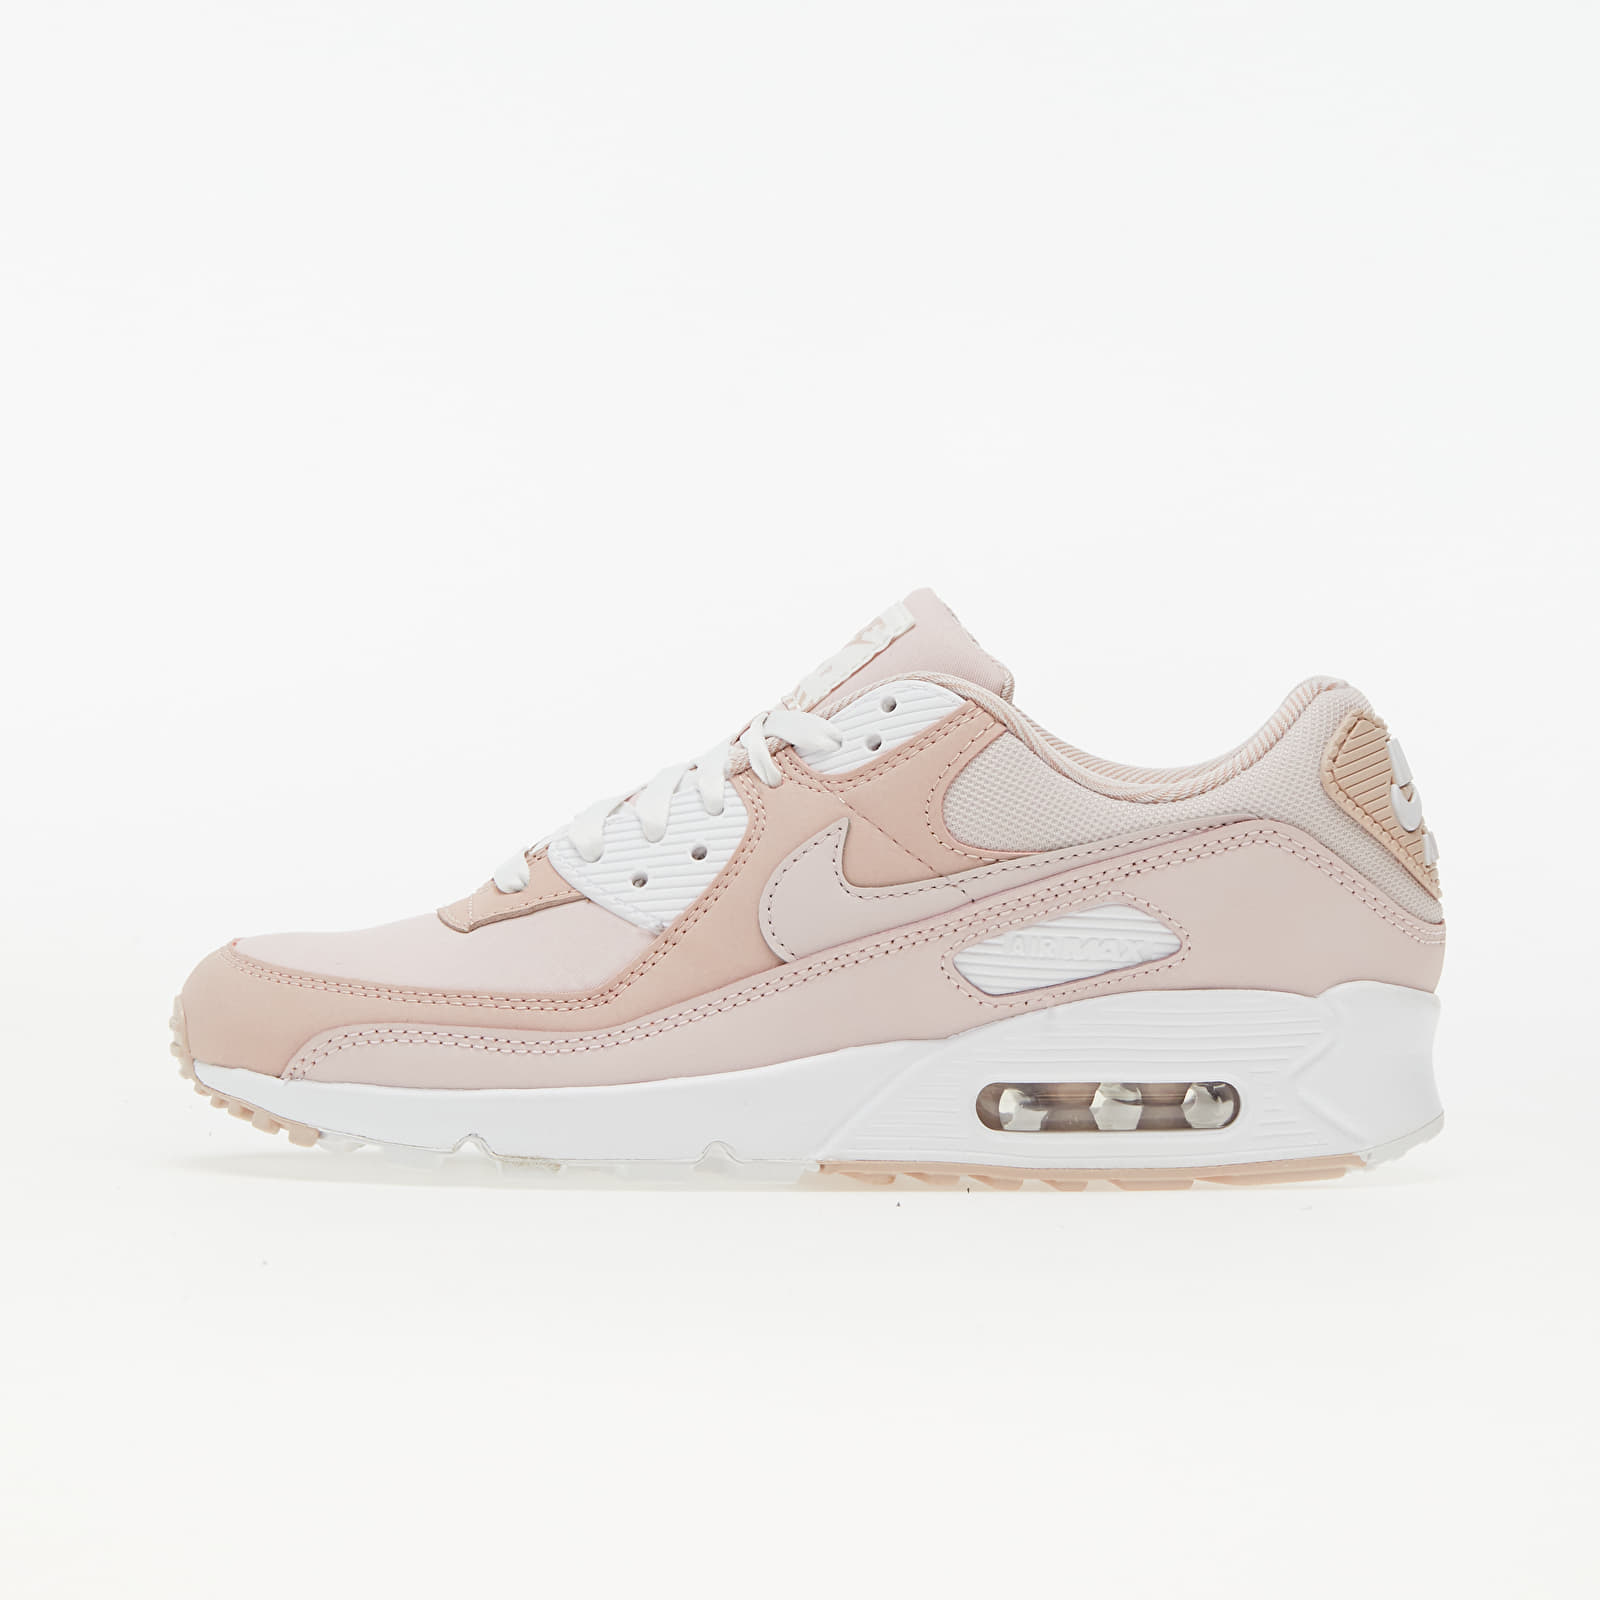 Nike W Air Max 90 Barely Rose/ Barely Rose-Pink Oxford EUR 37.5